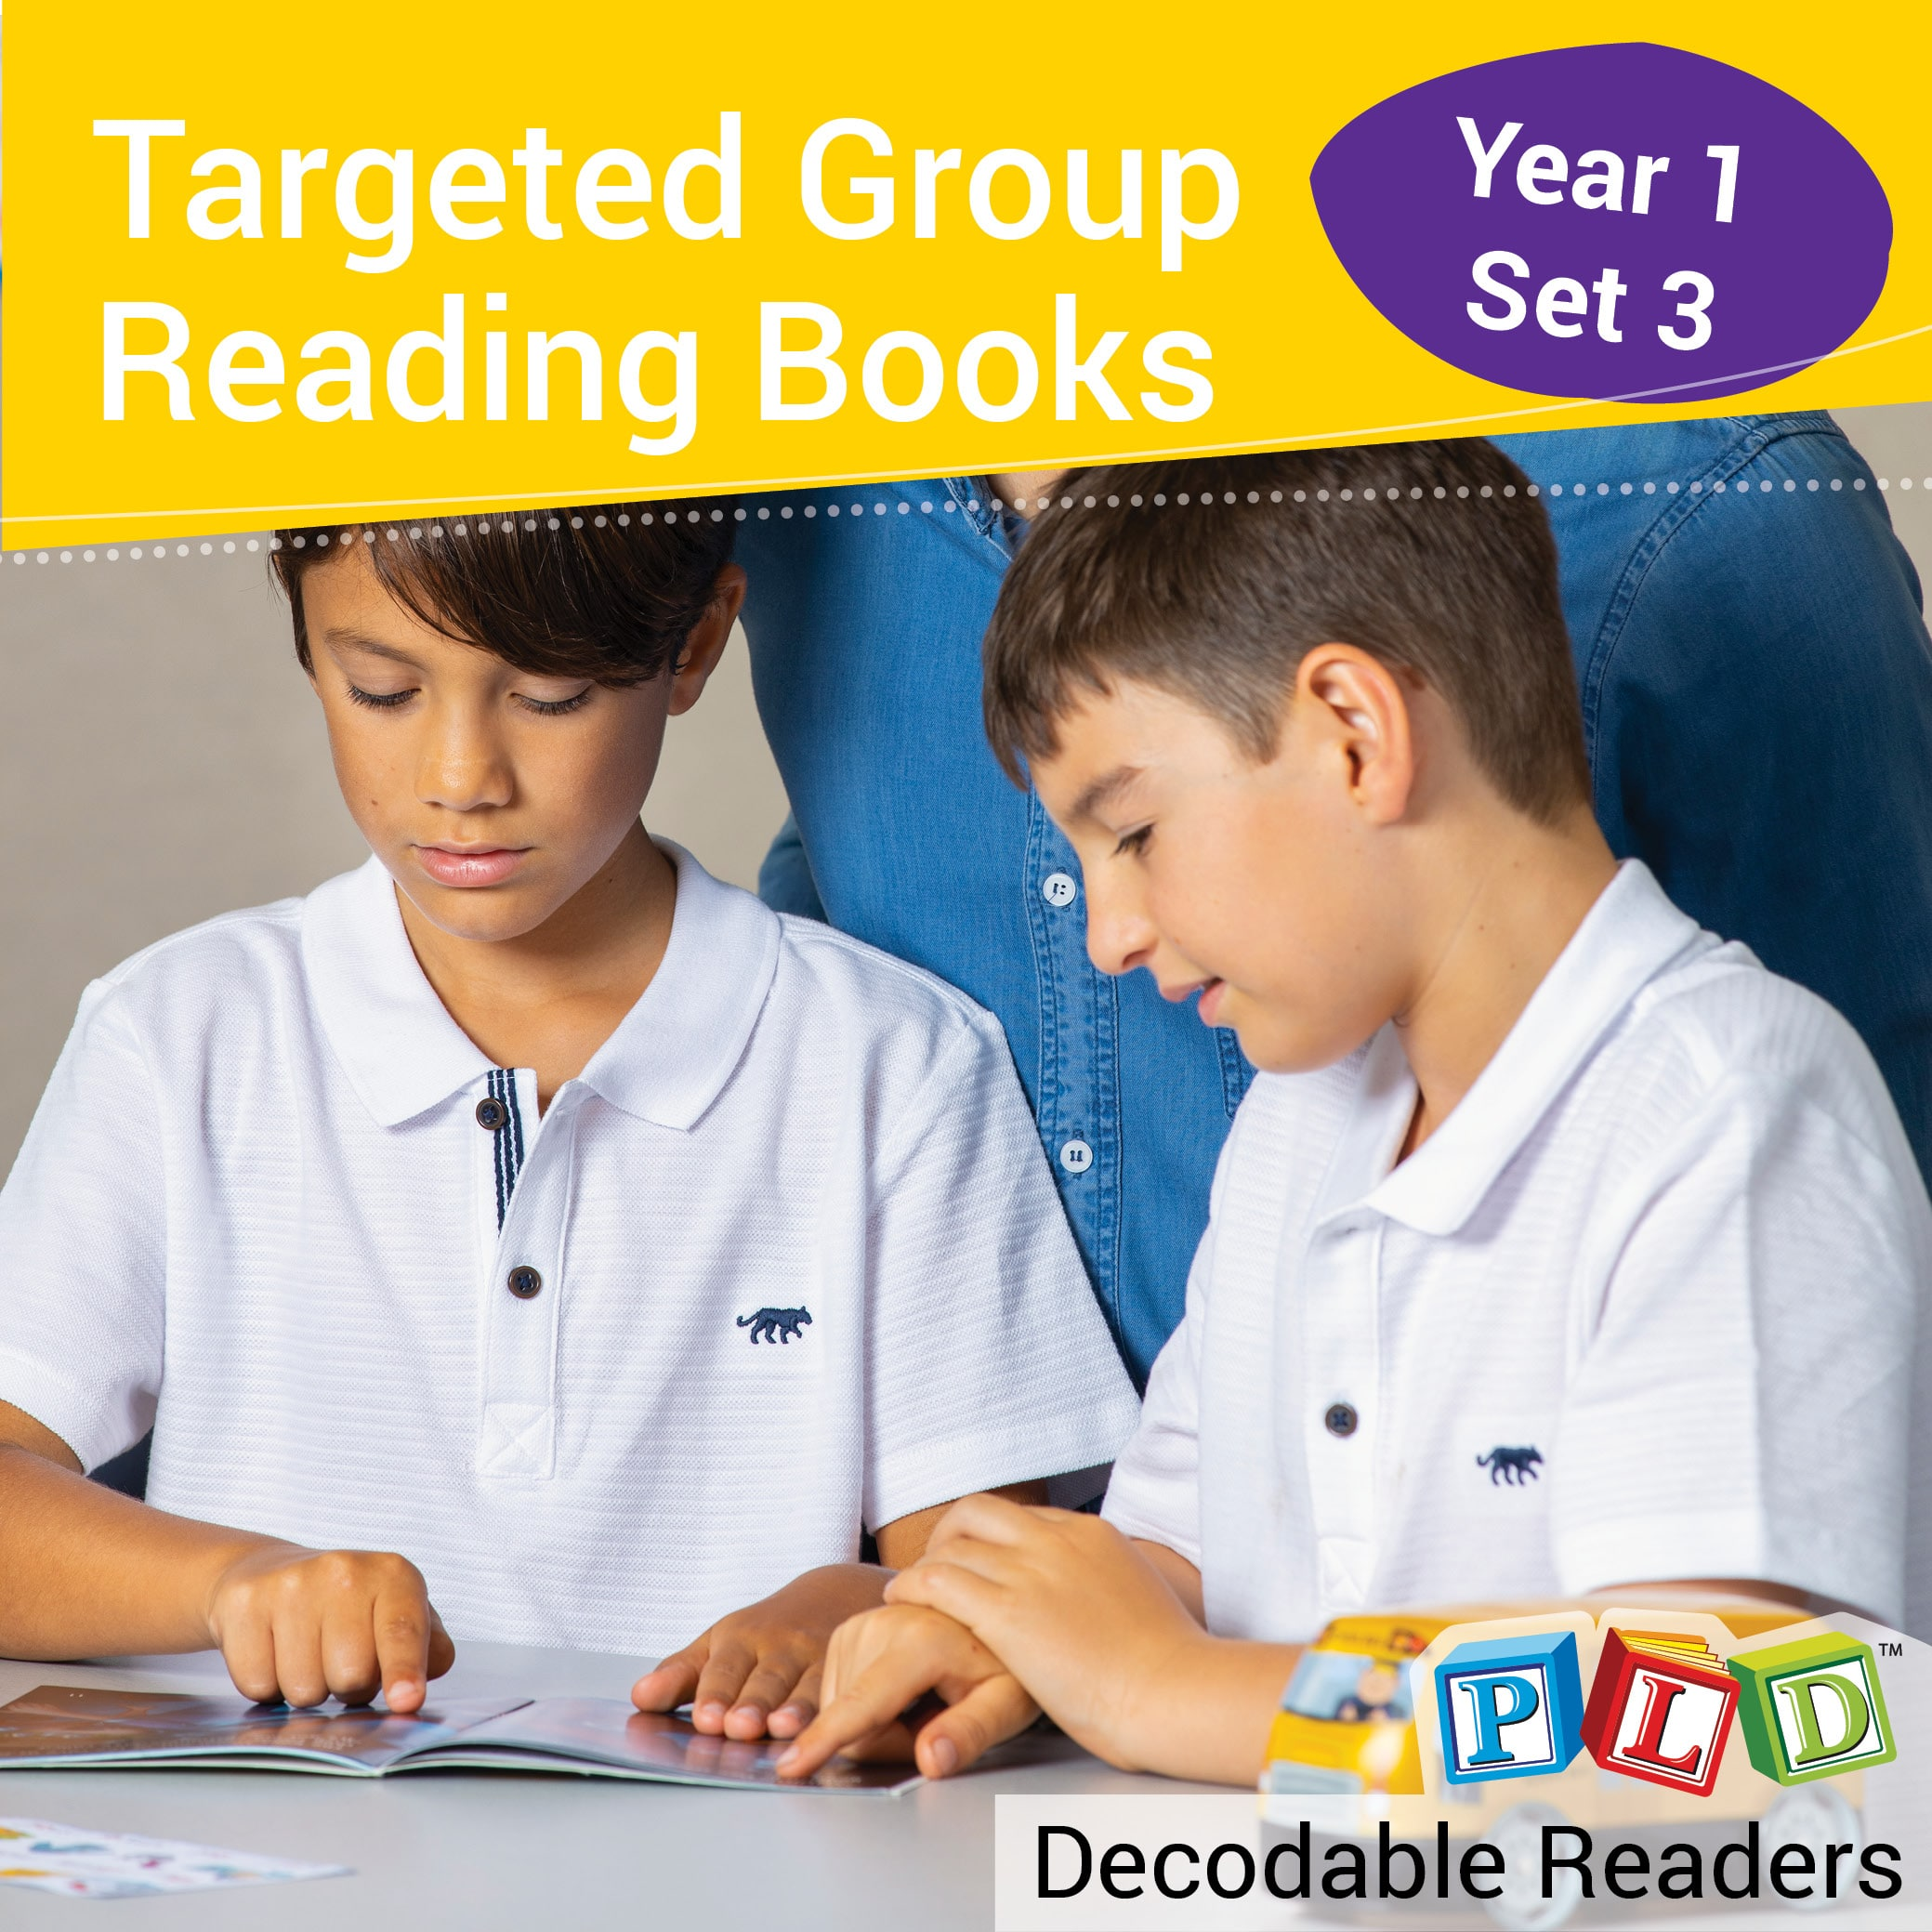 Targeted Group Reading Books Set 3